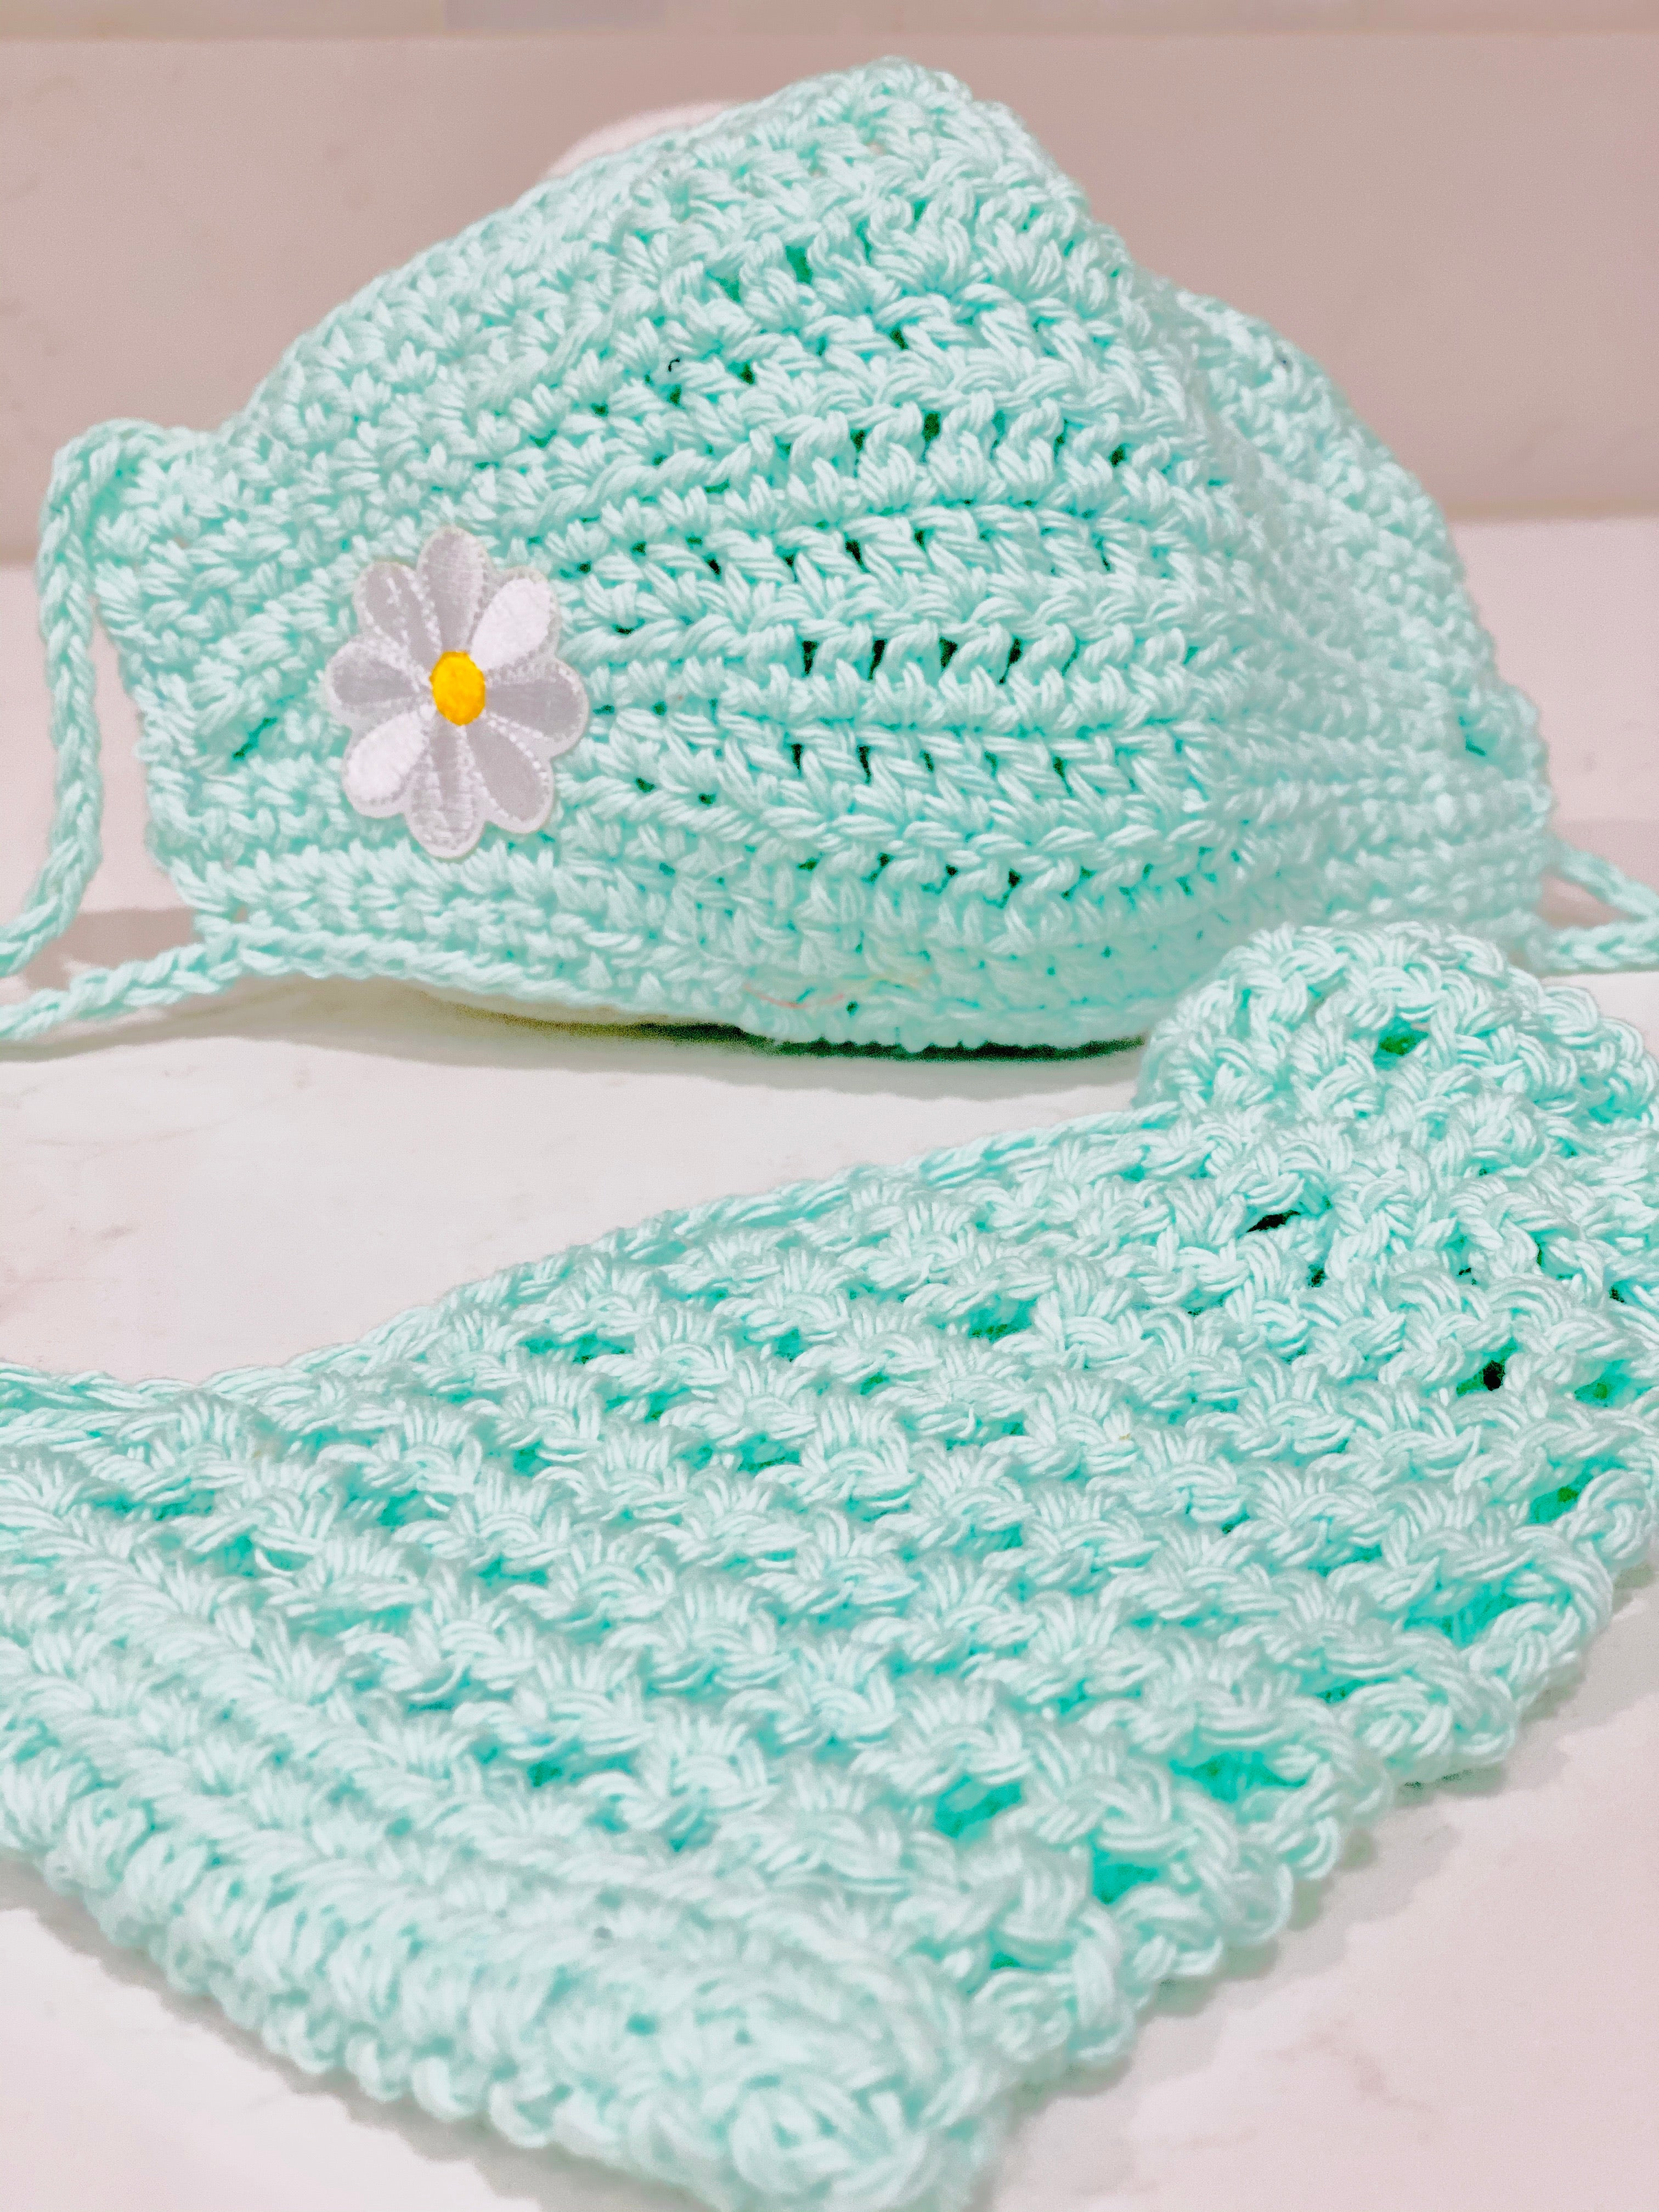 Face Covering Crochet Light teal